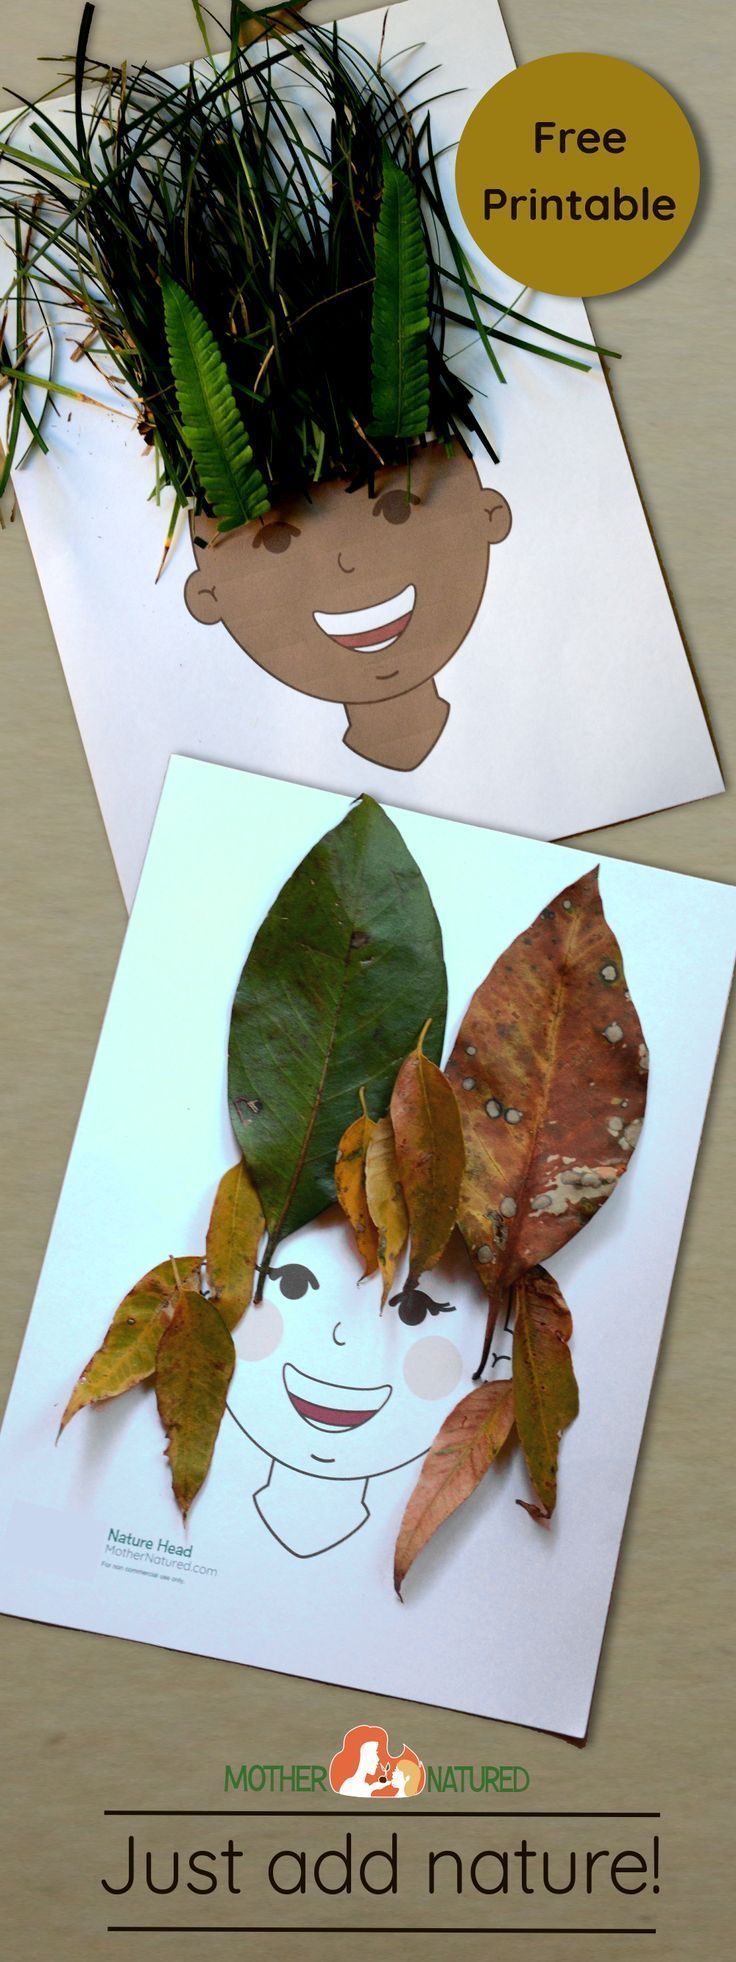 Free printable: Your kids will ADORE this nature head collage